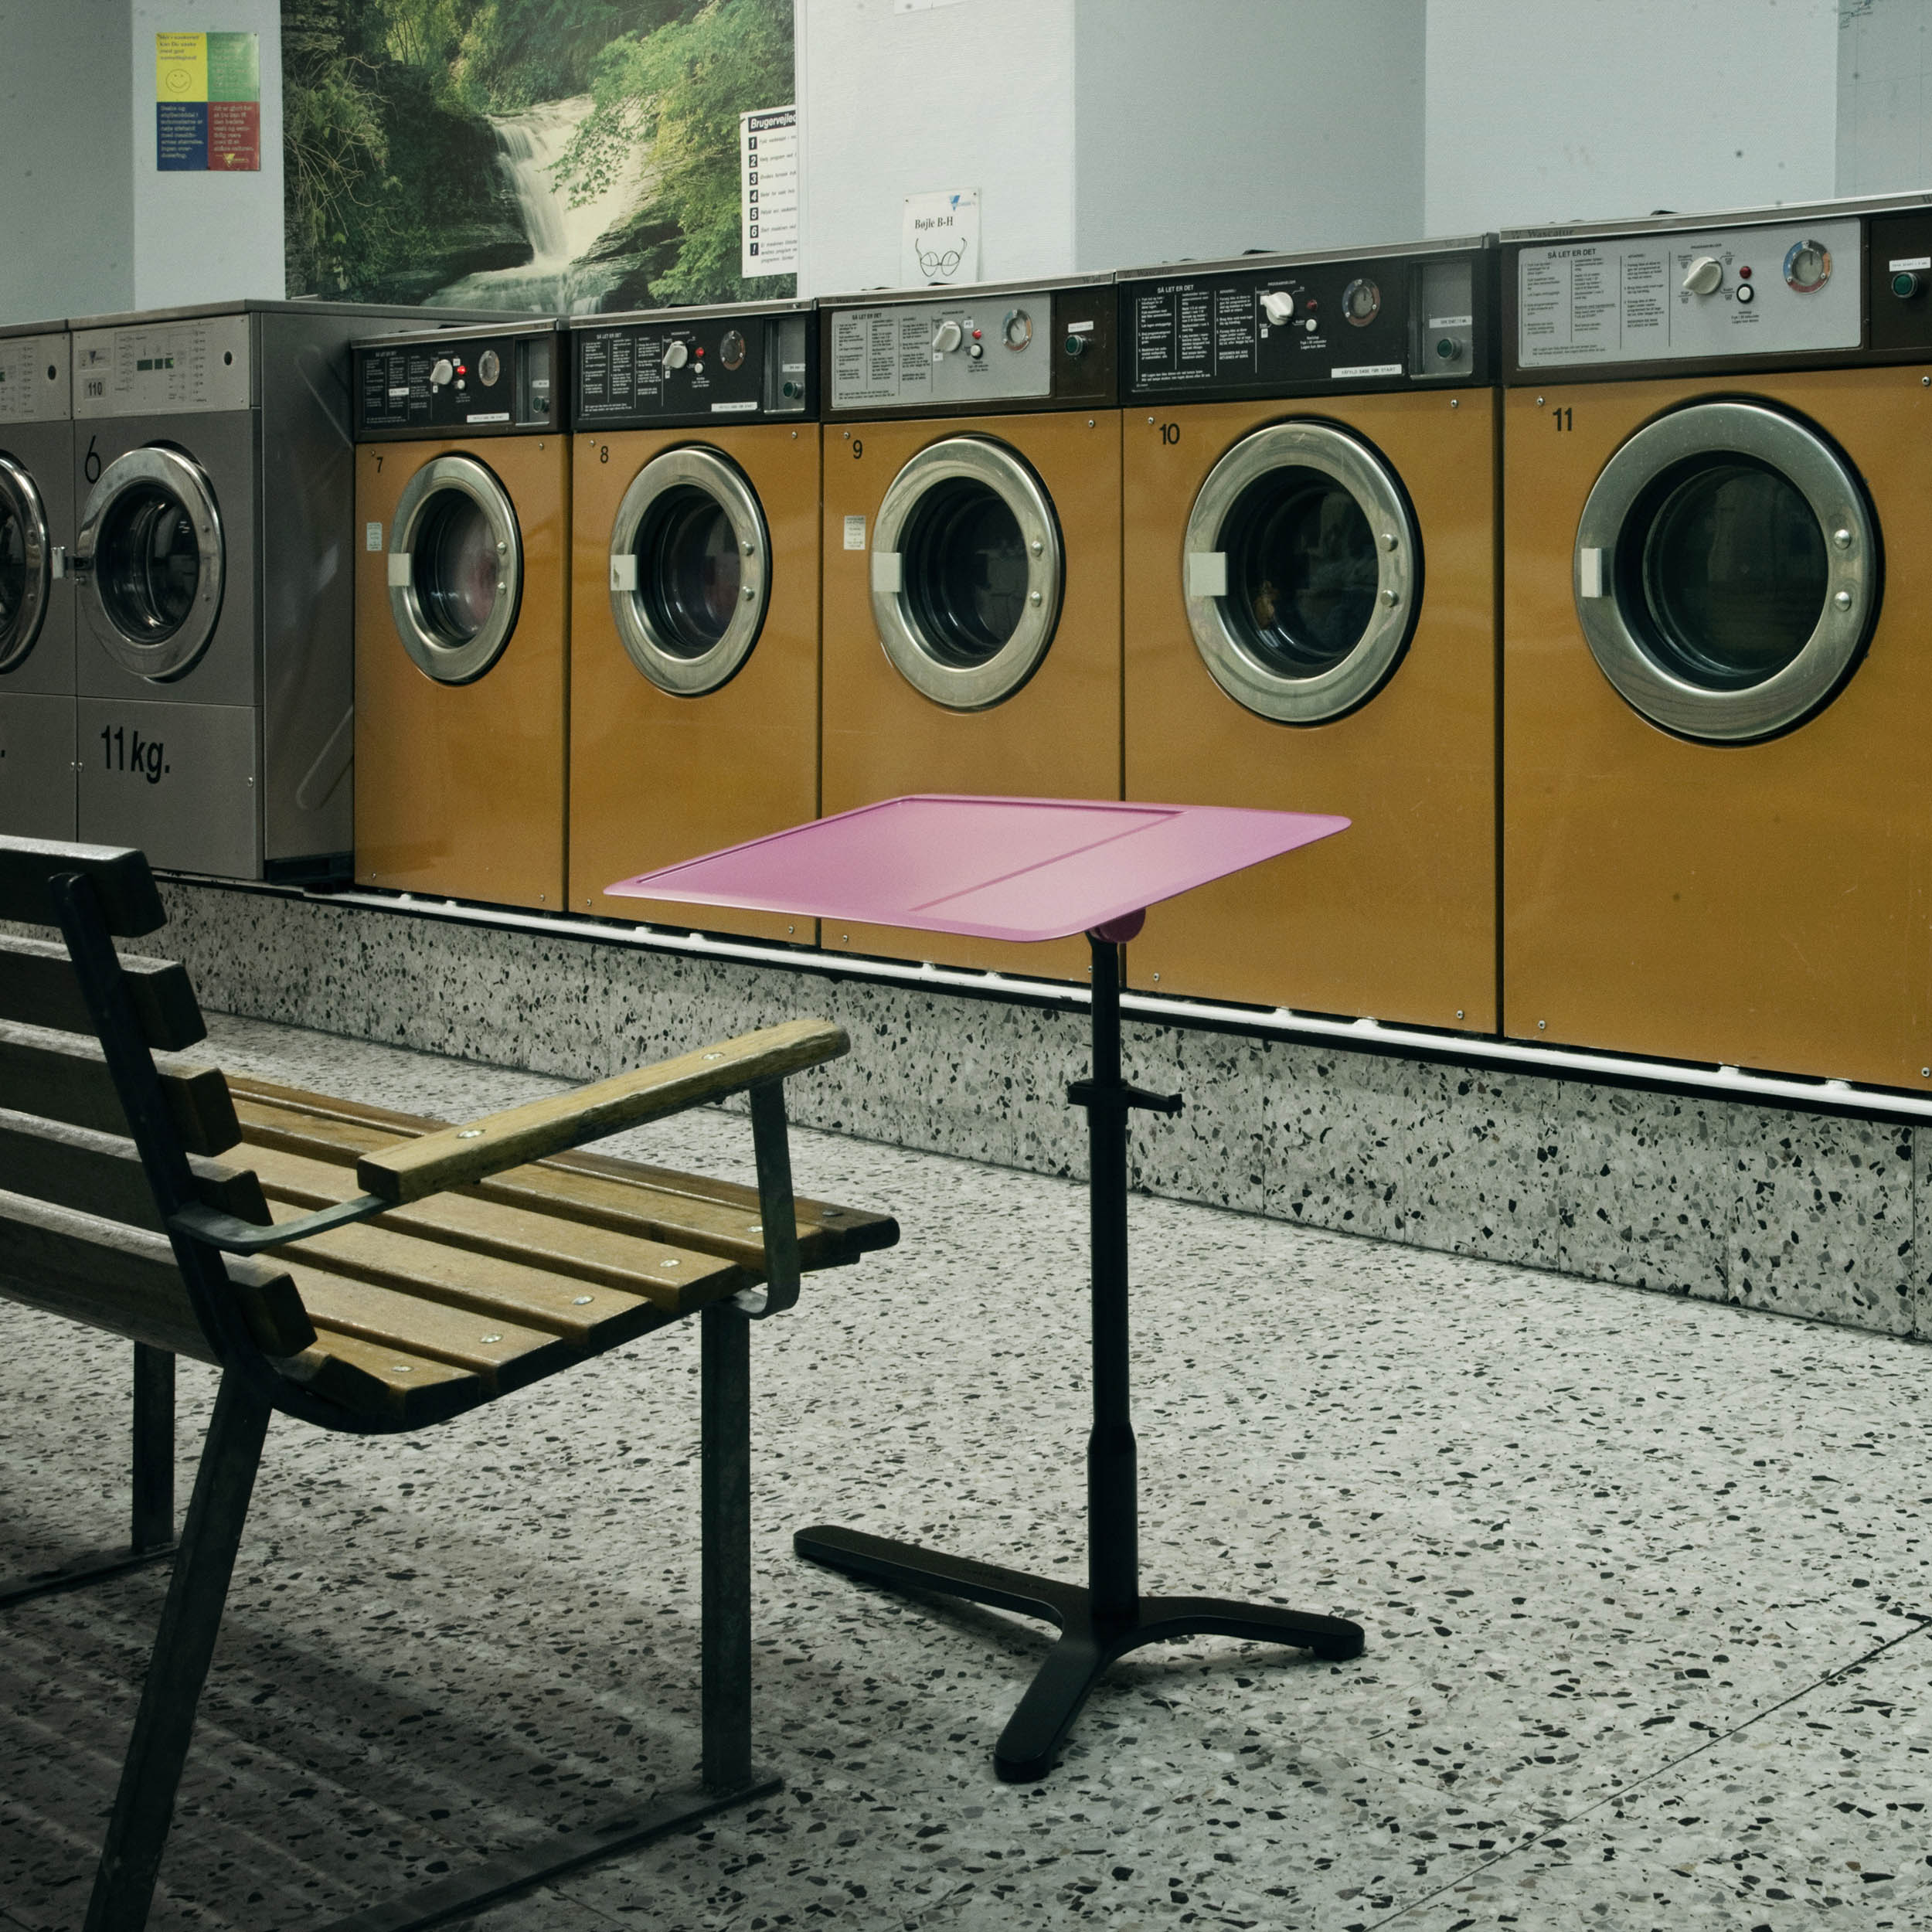 Pink table 'Space Enabler' displayed in a Laundromat